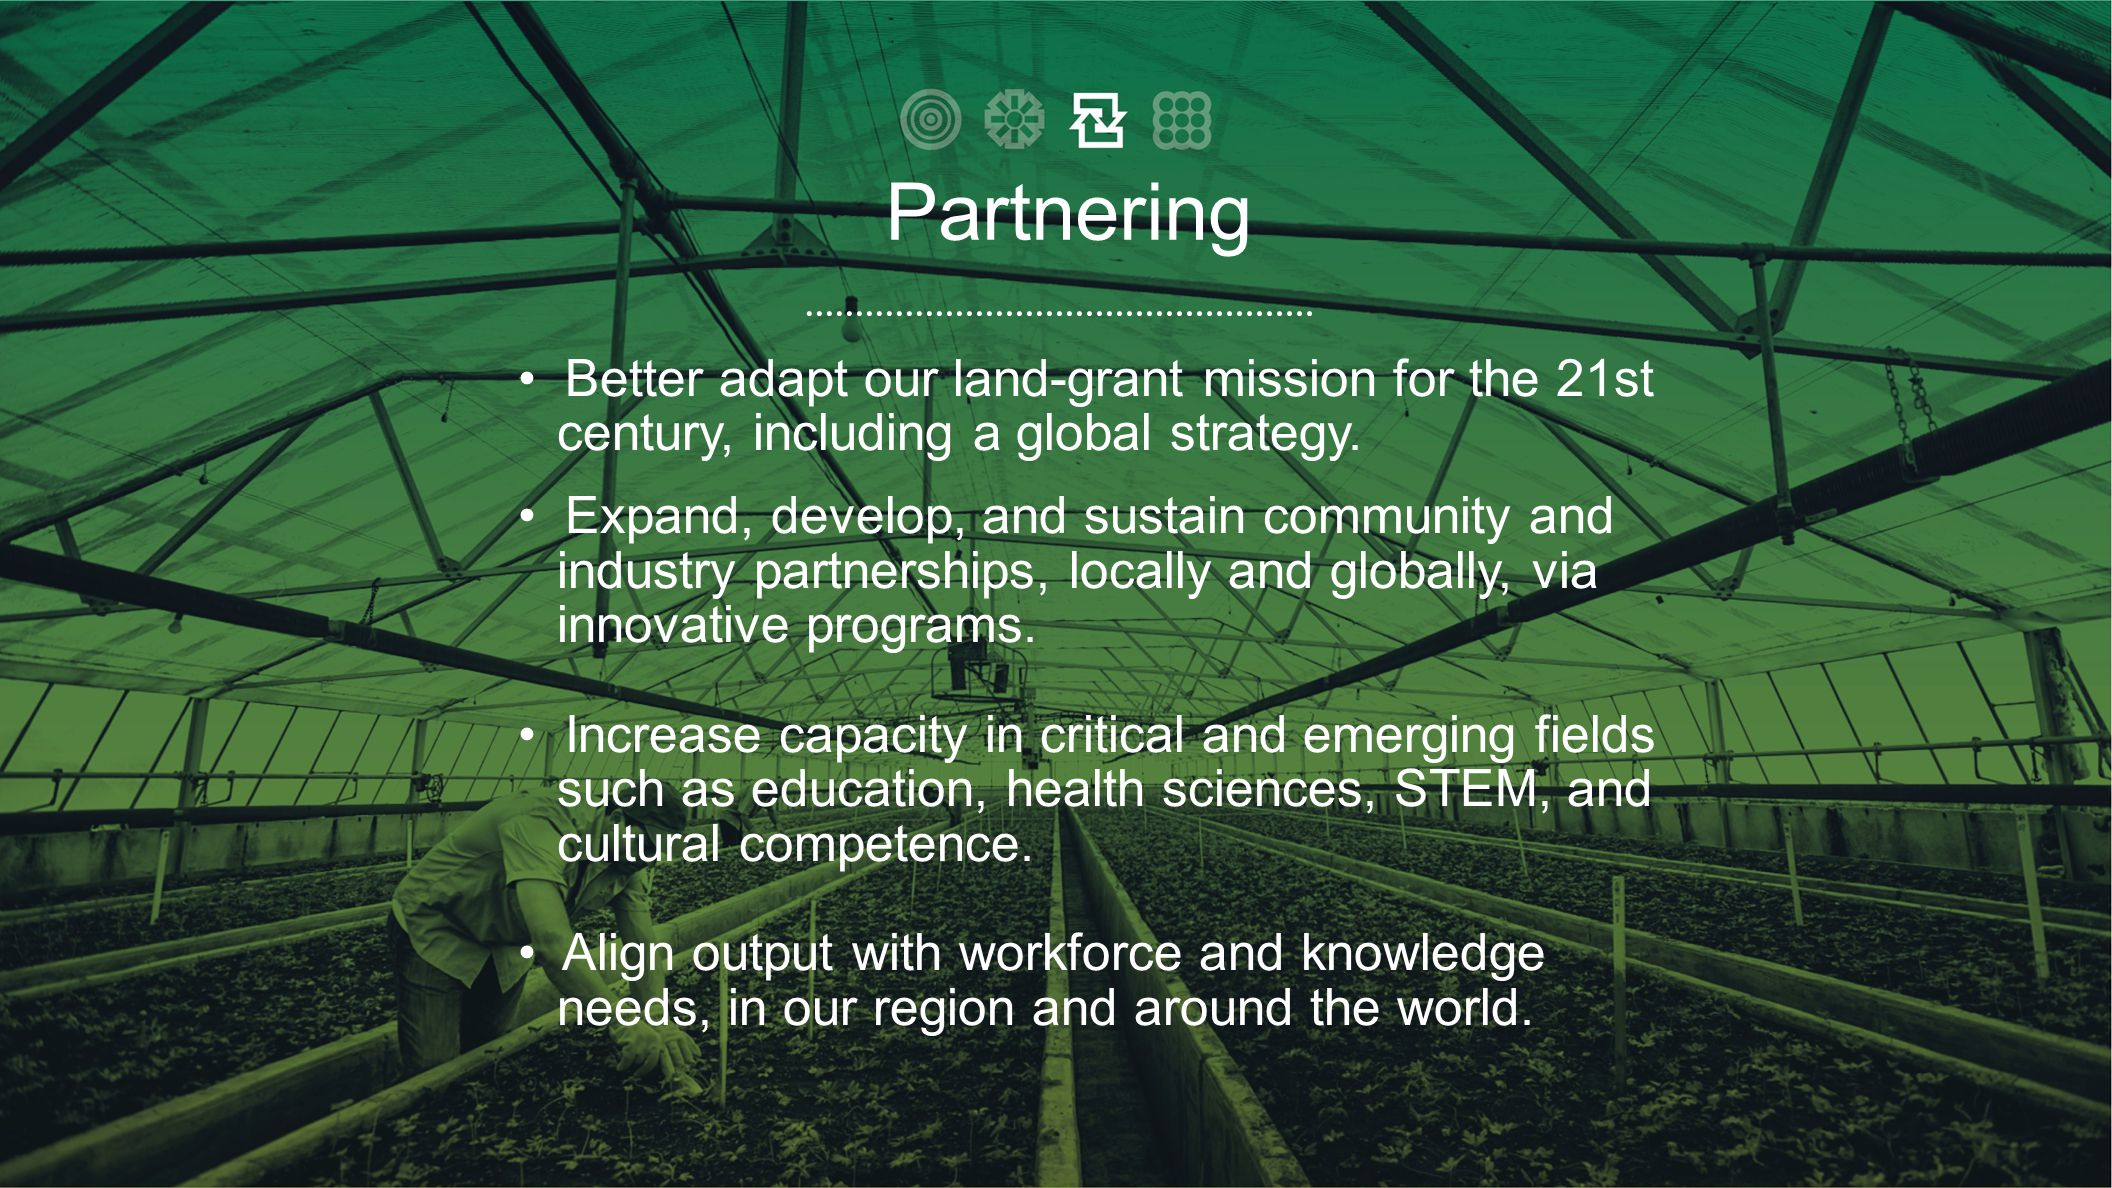 • Better adapt our land-grant mission for the 21st century, including a global strategy. • Expand, develop, and sustain community and industry partner